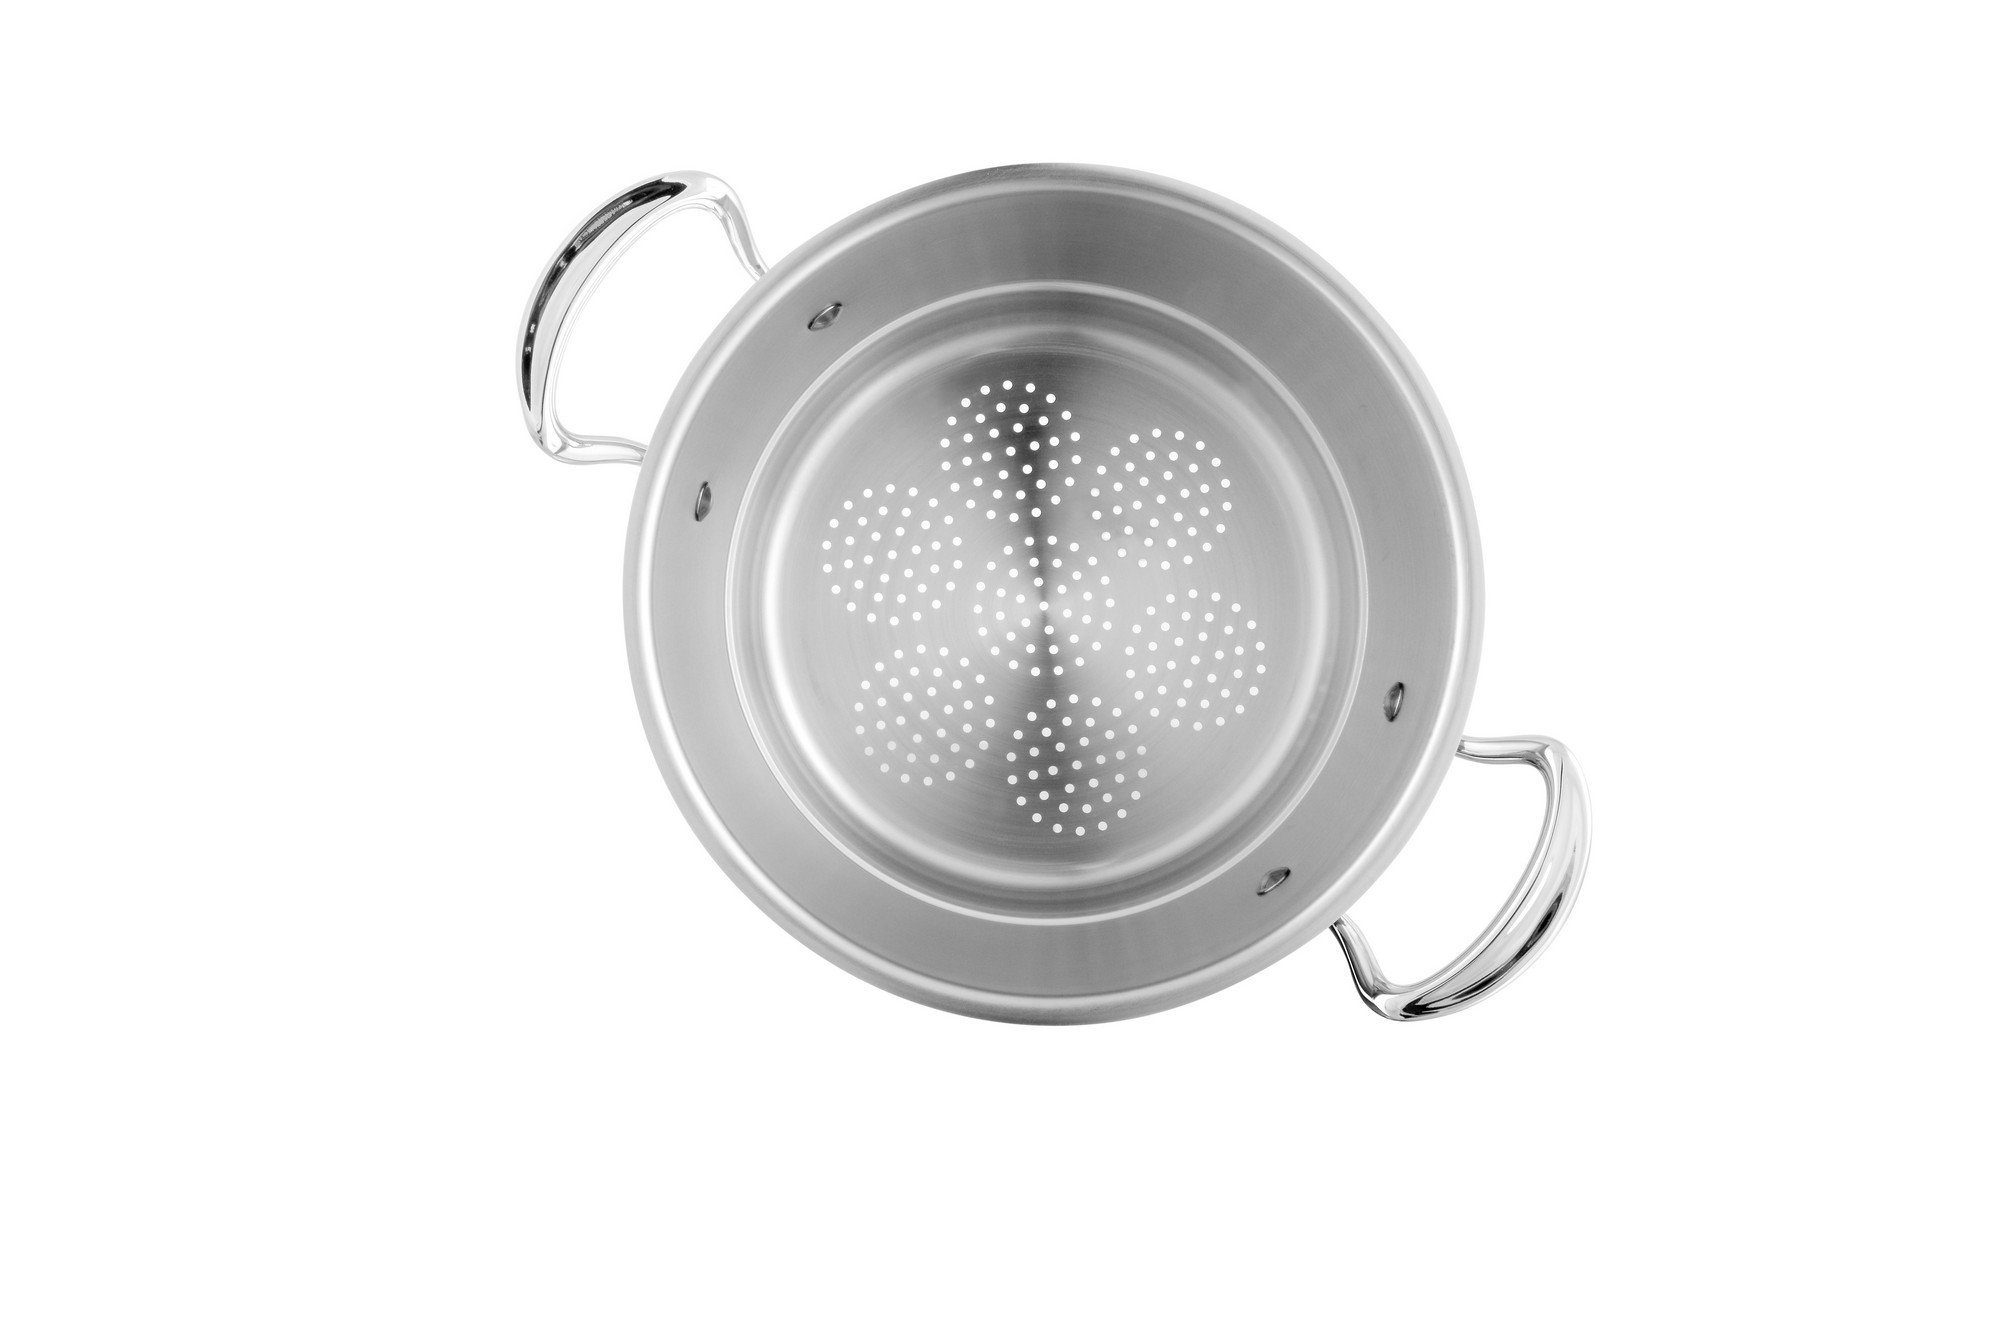 Mauviel Made In France M'Cook 5 Ply Stainless Steel 5221.20 8 Inch Steamer Insert, Cast Stainless Steel Handle